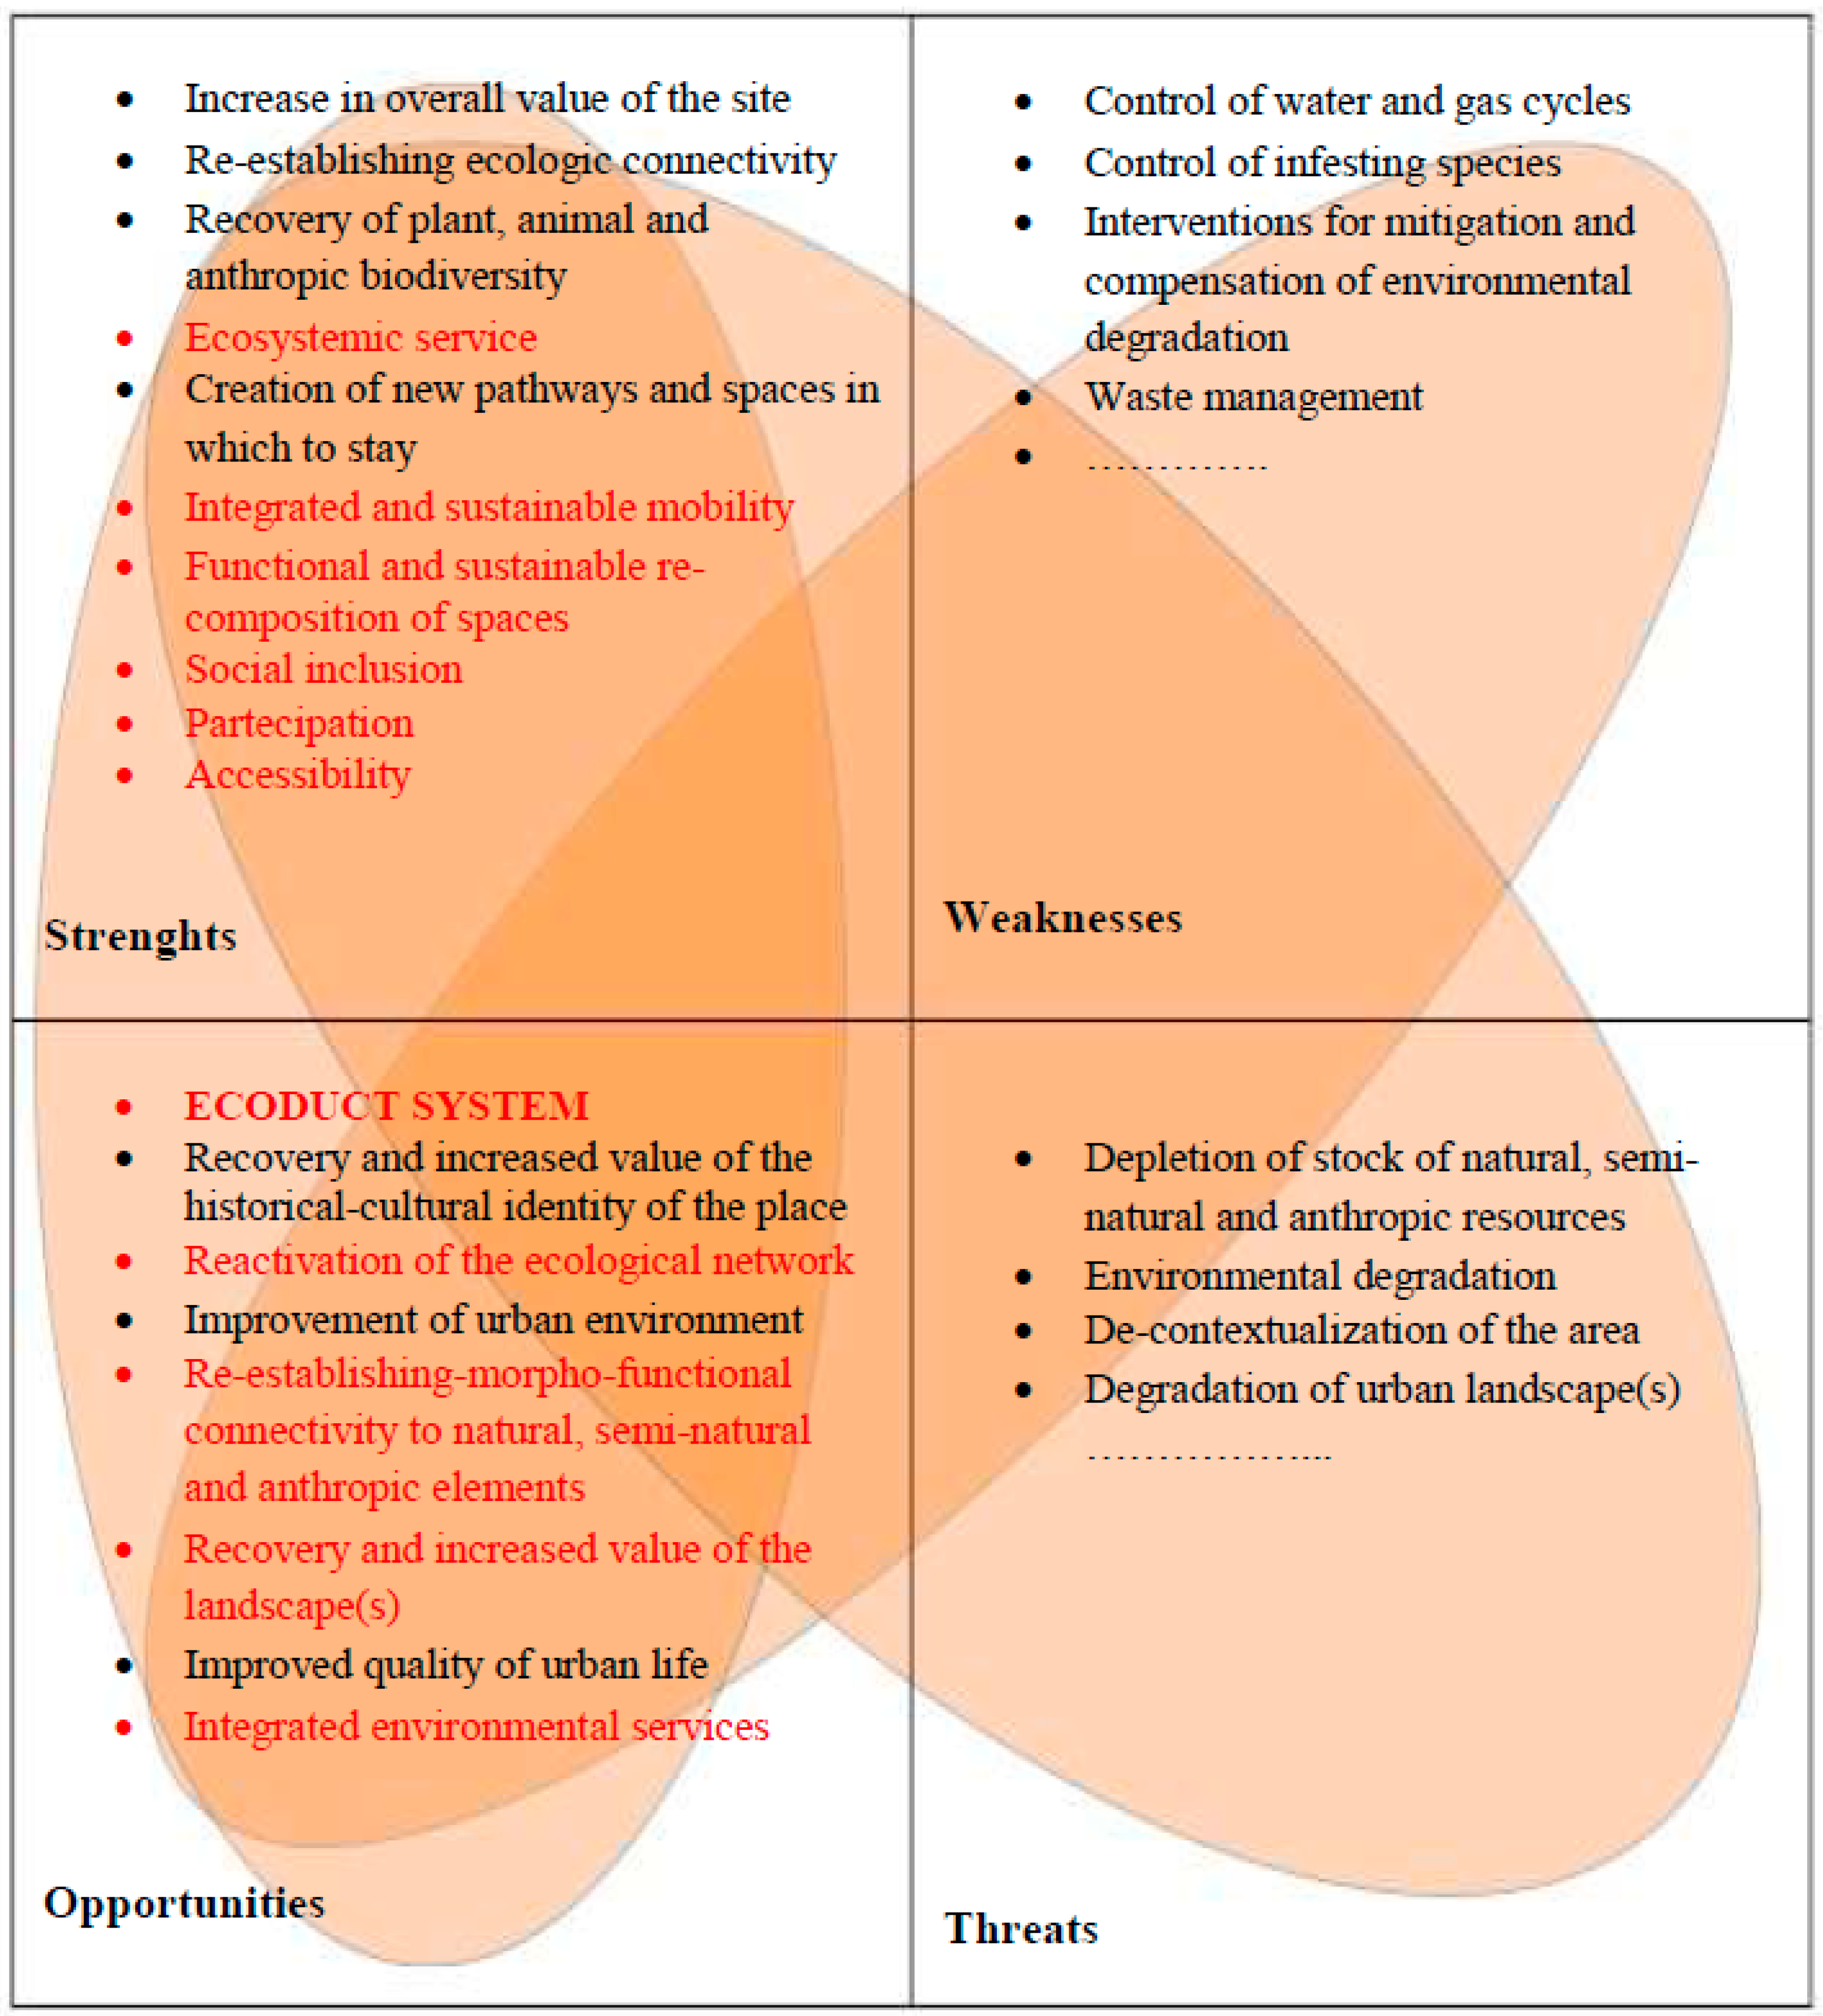 Strenghts and limitations of functionalism